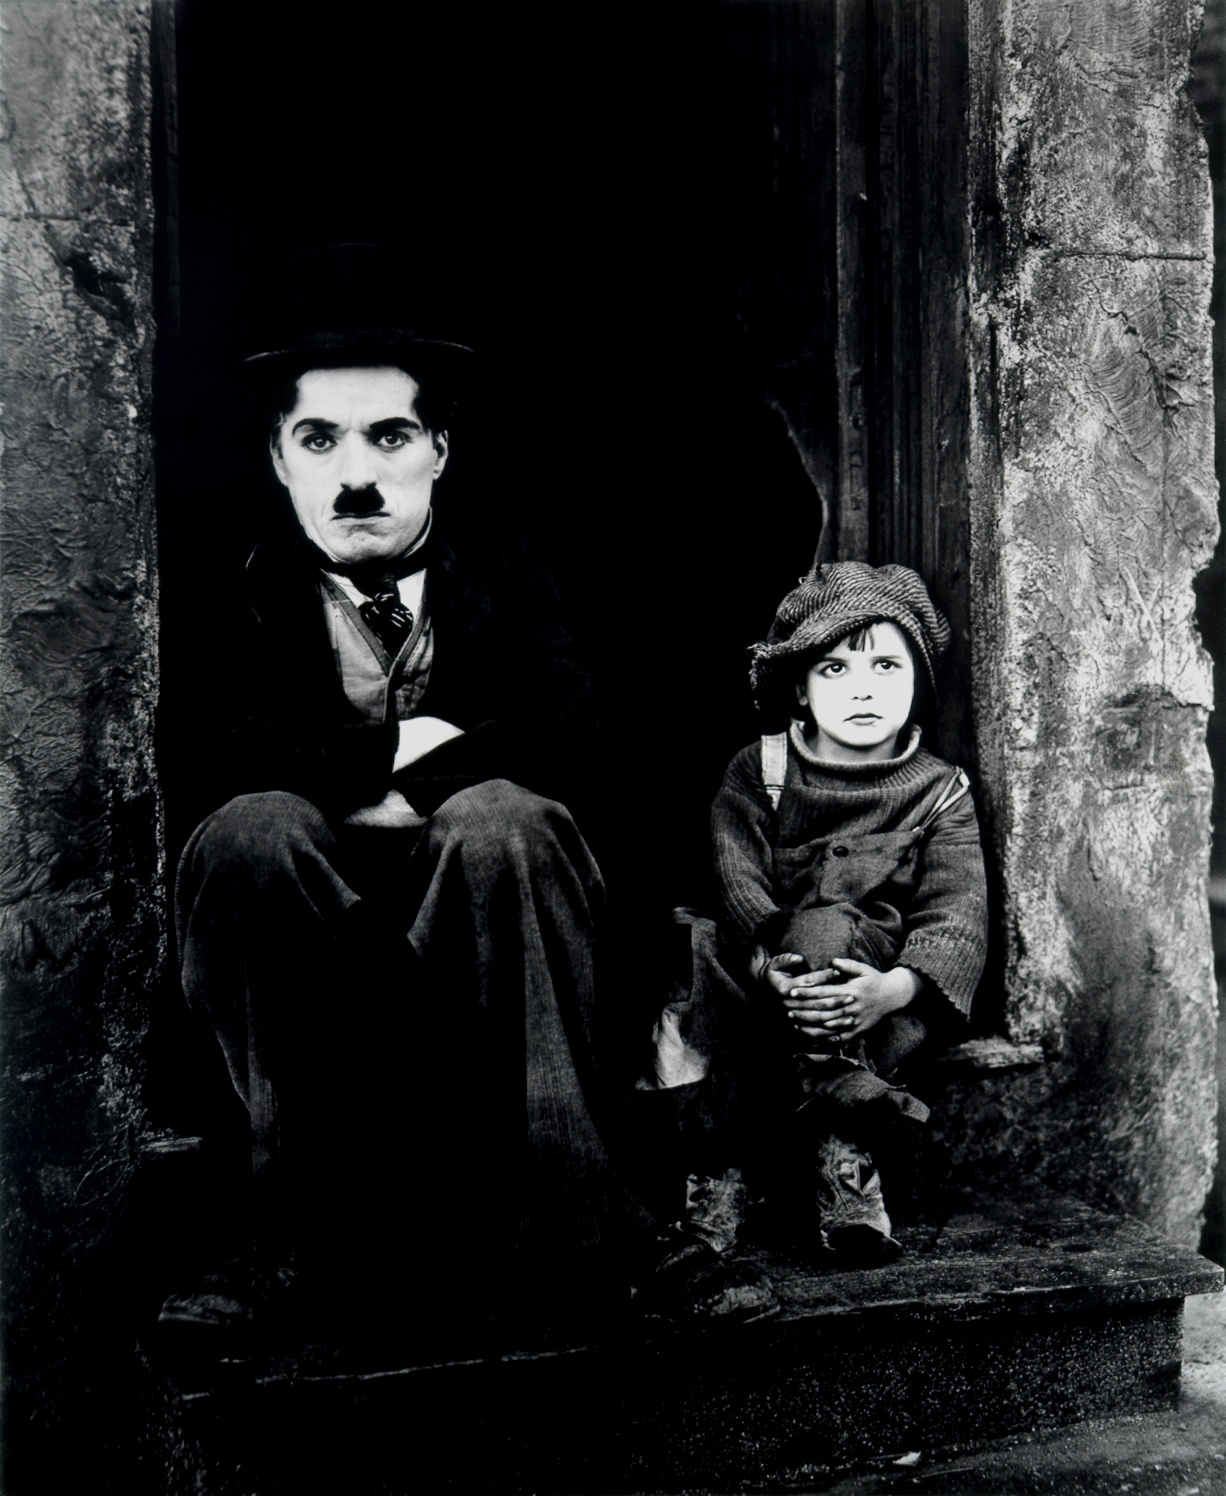 http://www.doctormacro.com/Images/Chaplin,%20Charlie/Chaplin,%20Charlie%20(Kid,%20The)_01.jpg